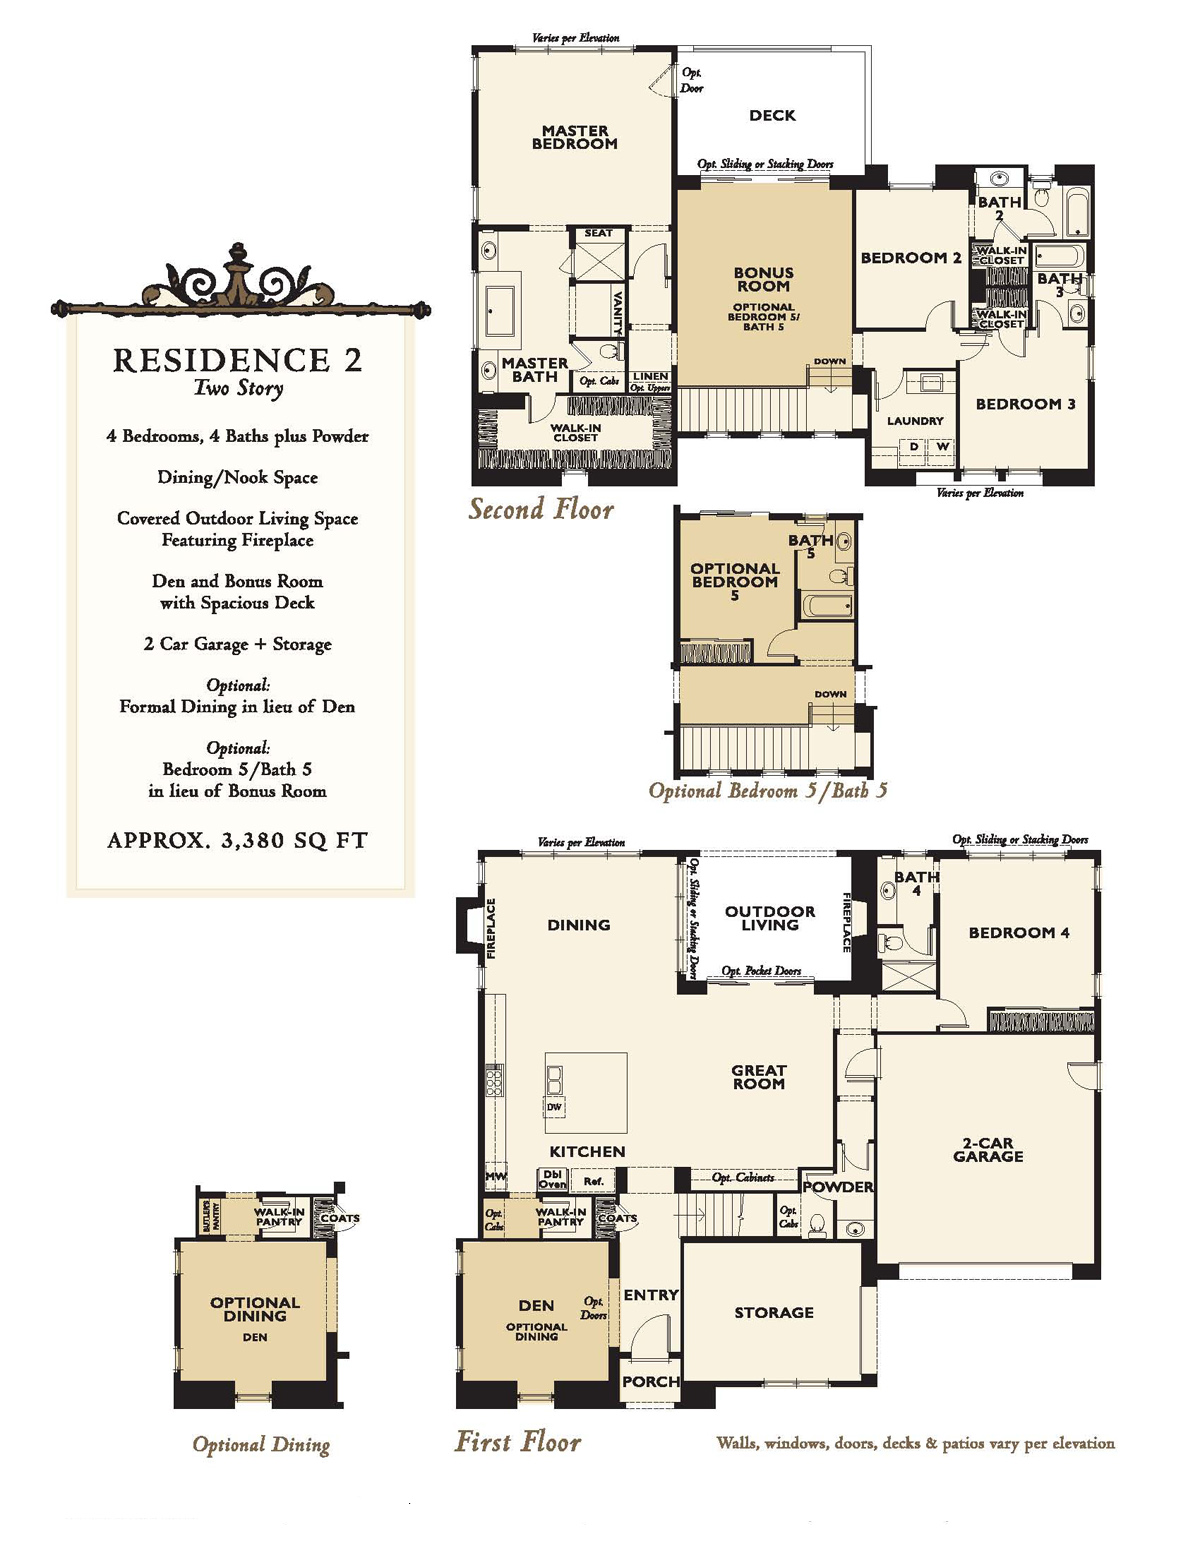 New homes at enclave rancho santa fe floor plans north for Santa fe home design